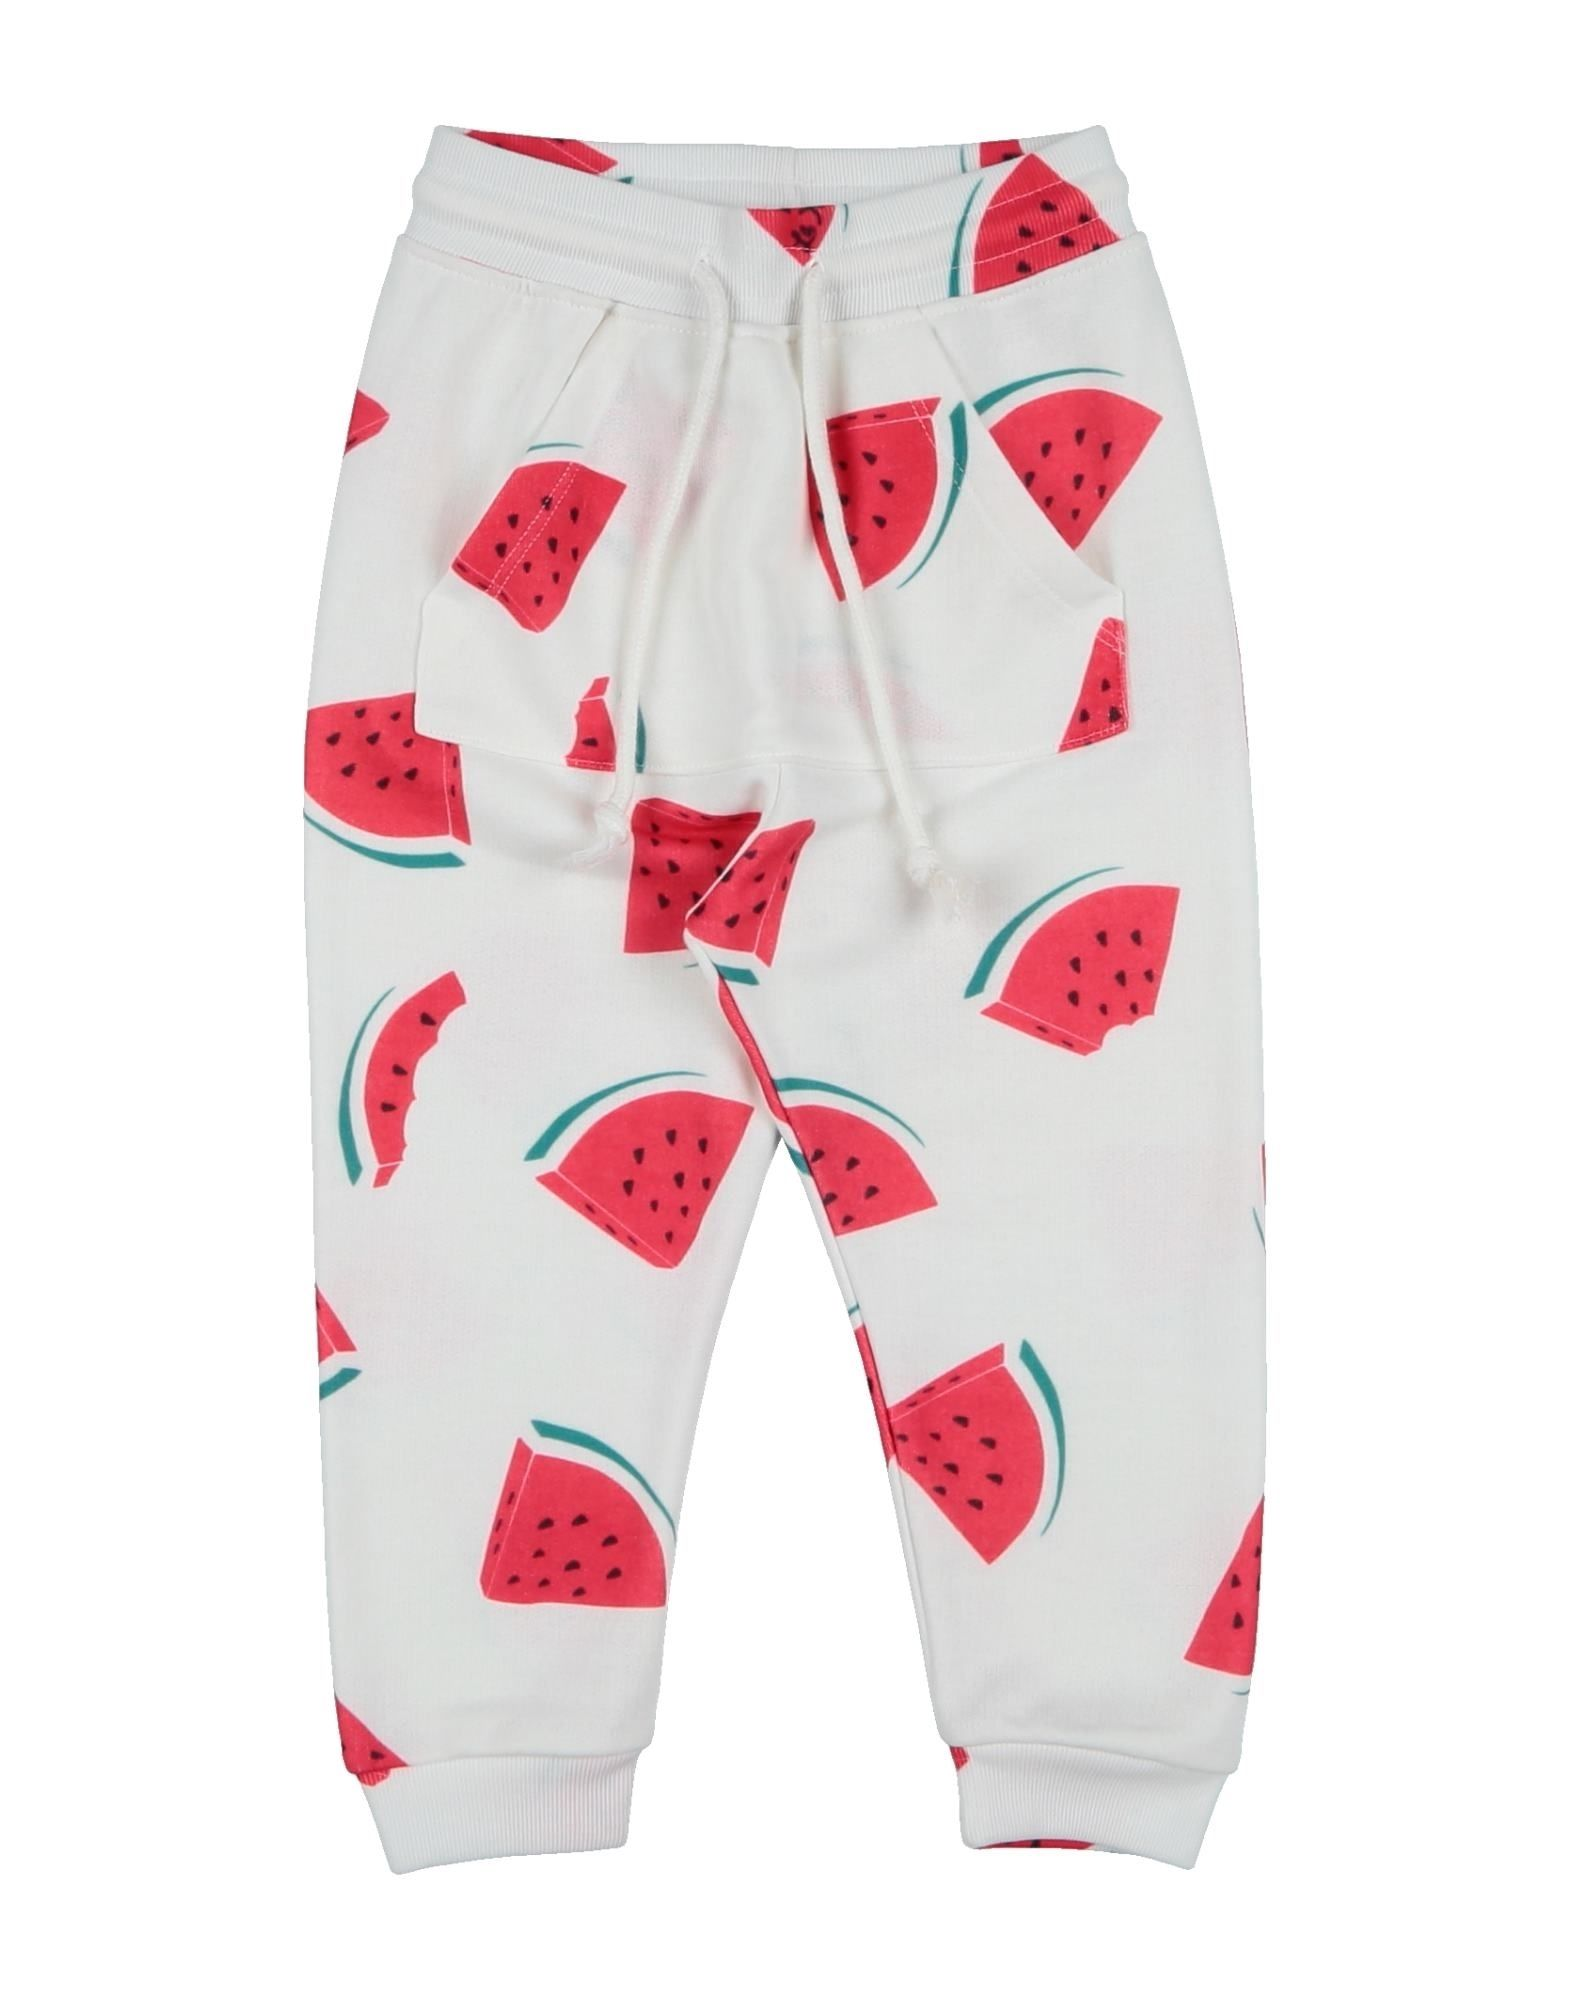 La Kasa Dei Kolori Kids' Casual Pants In White